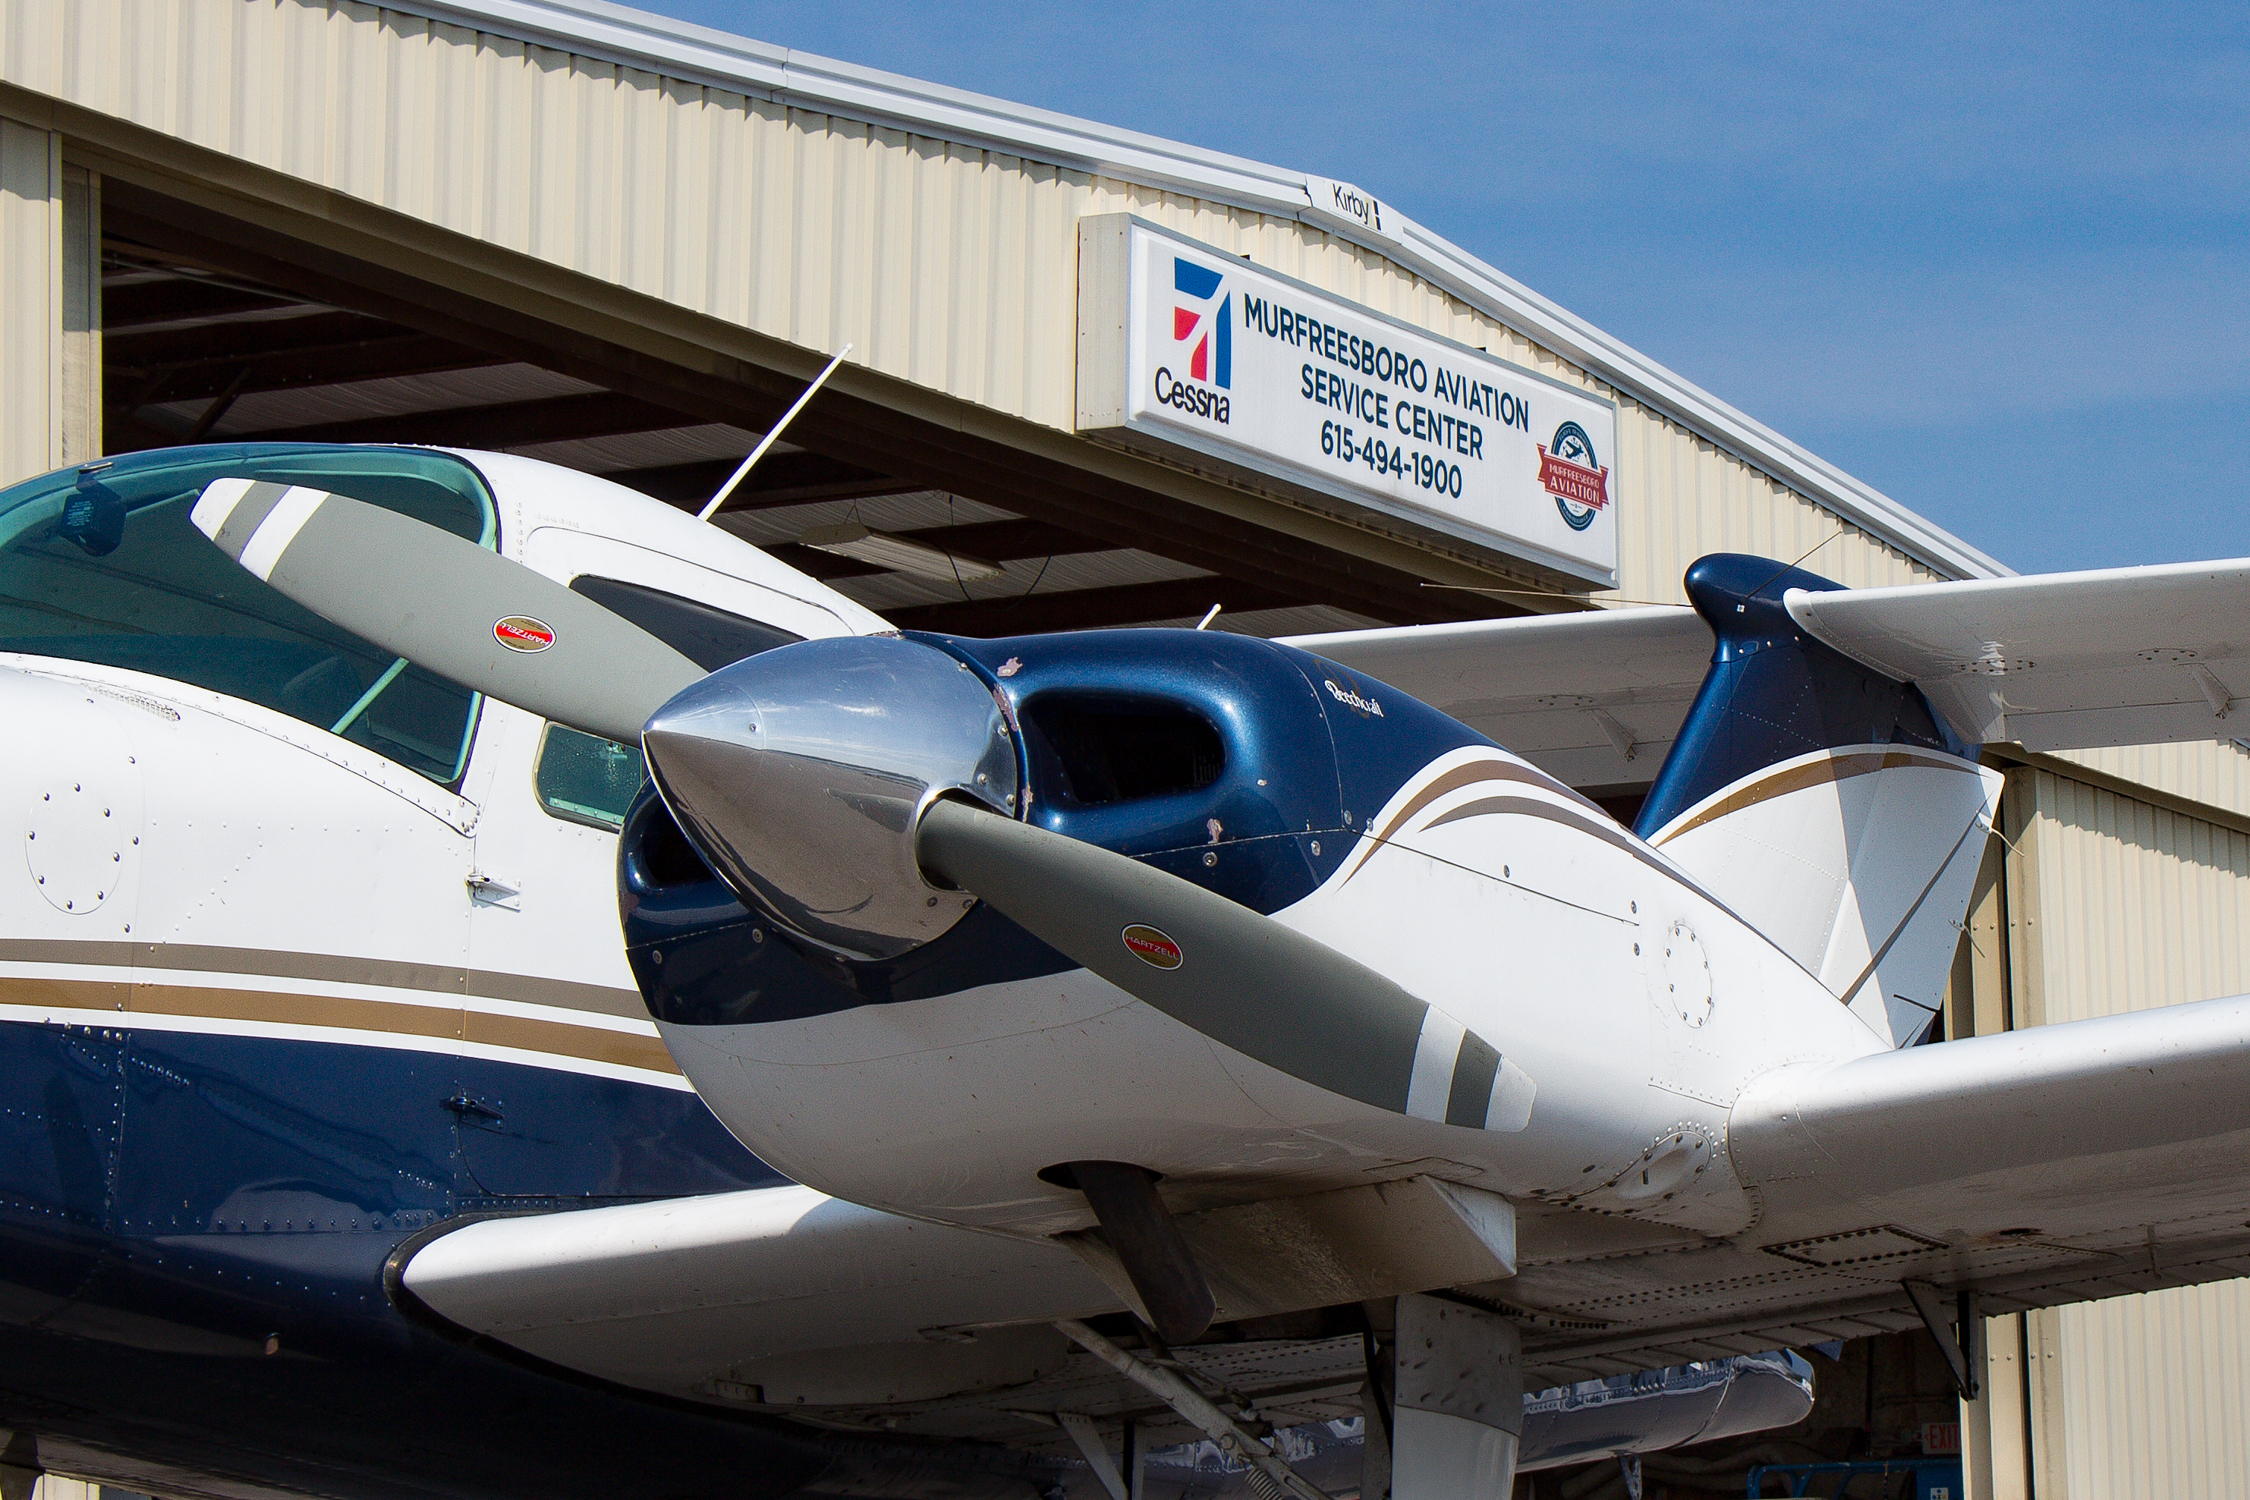 Murfreesboro Aviation recognized for flight training excellence